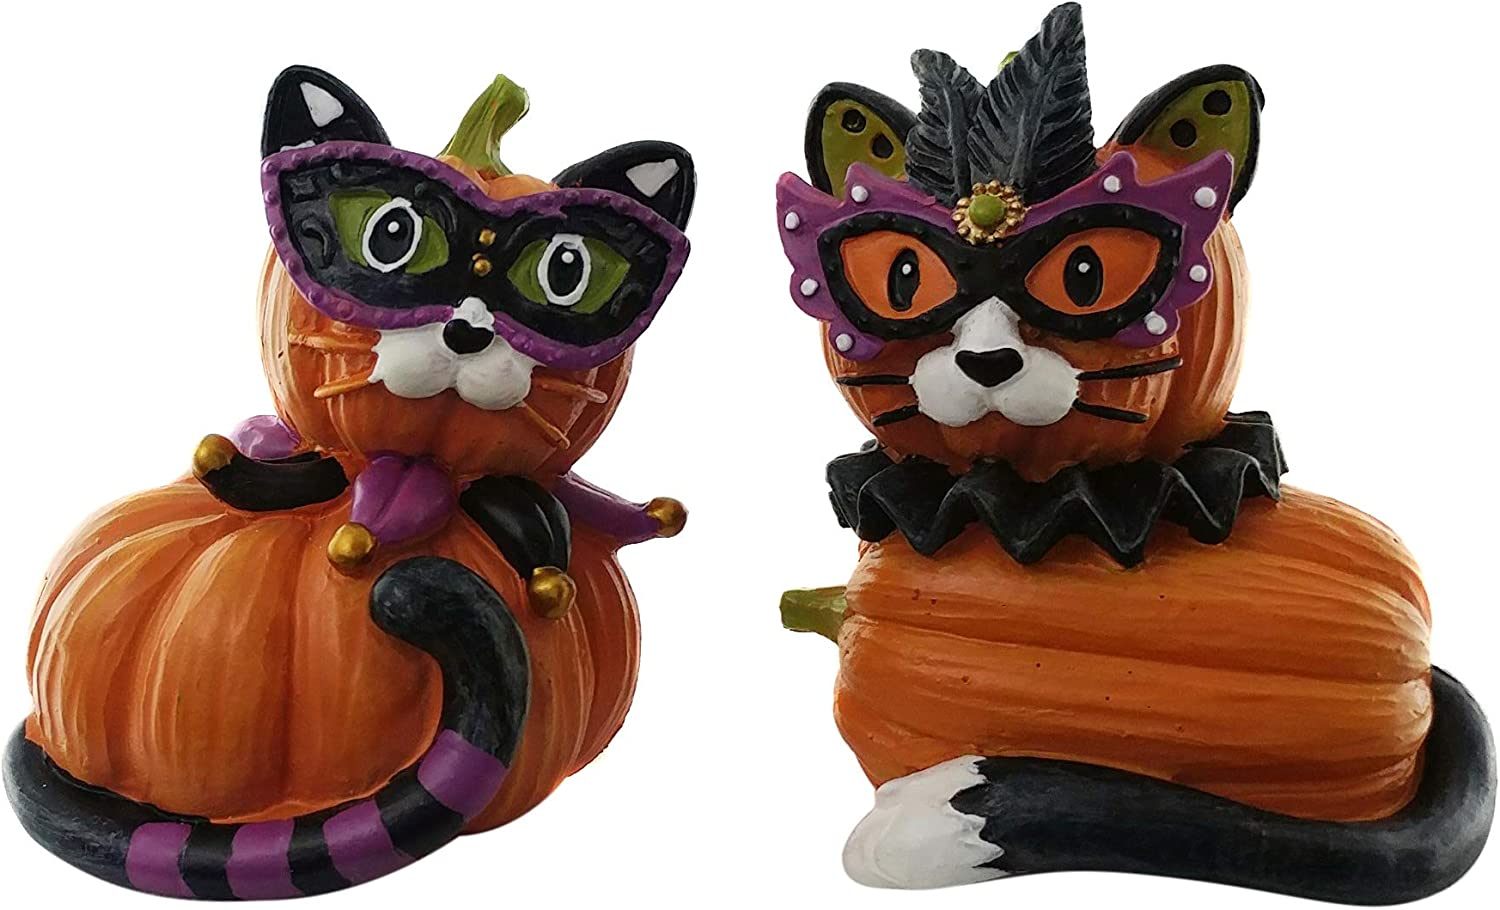 Cat Queen and Joker Party Pumpkin Halloween Cat Decorations | Collectible Cat Pumpkin Shelf Decorations | (2 Pack) for Kitchen, Home and Office Décor